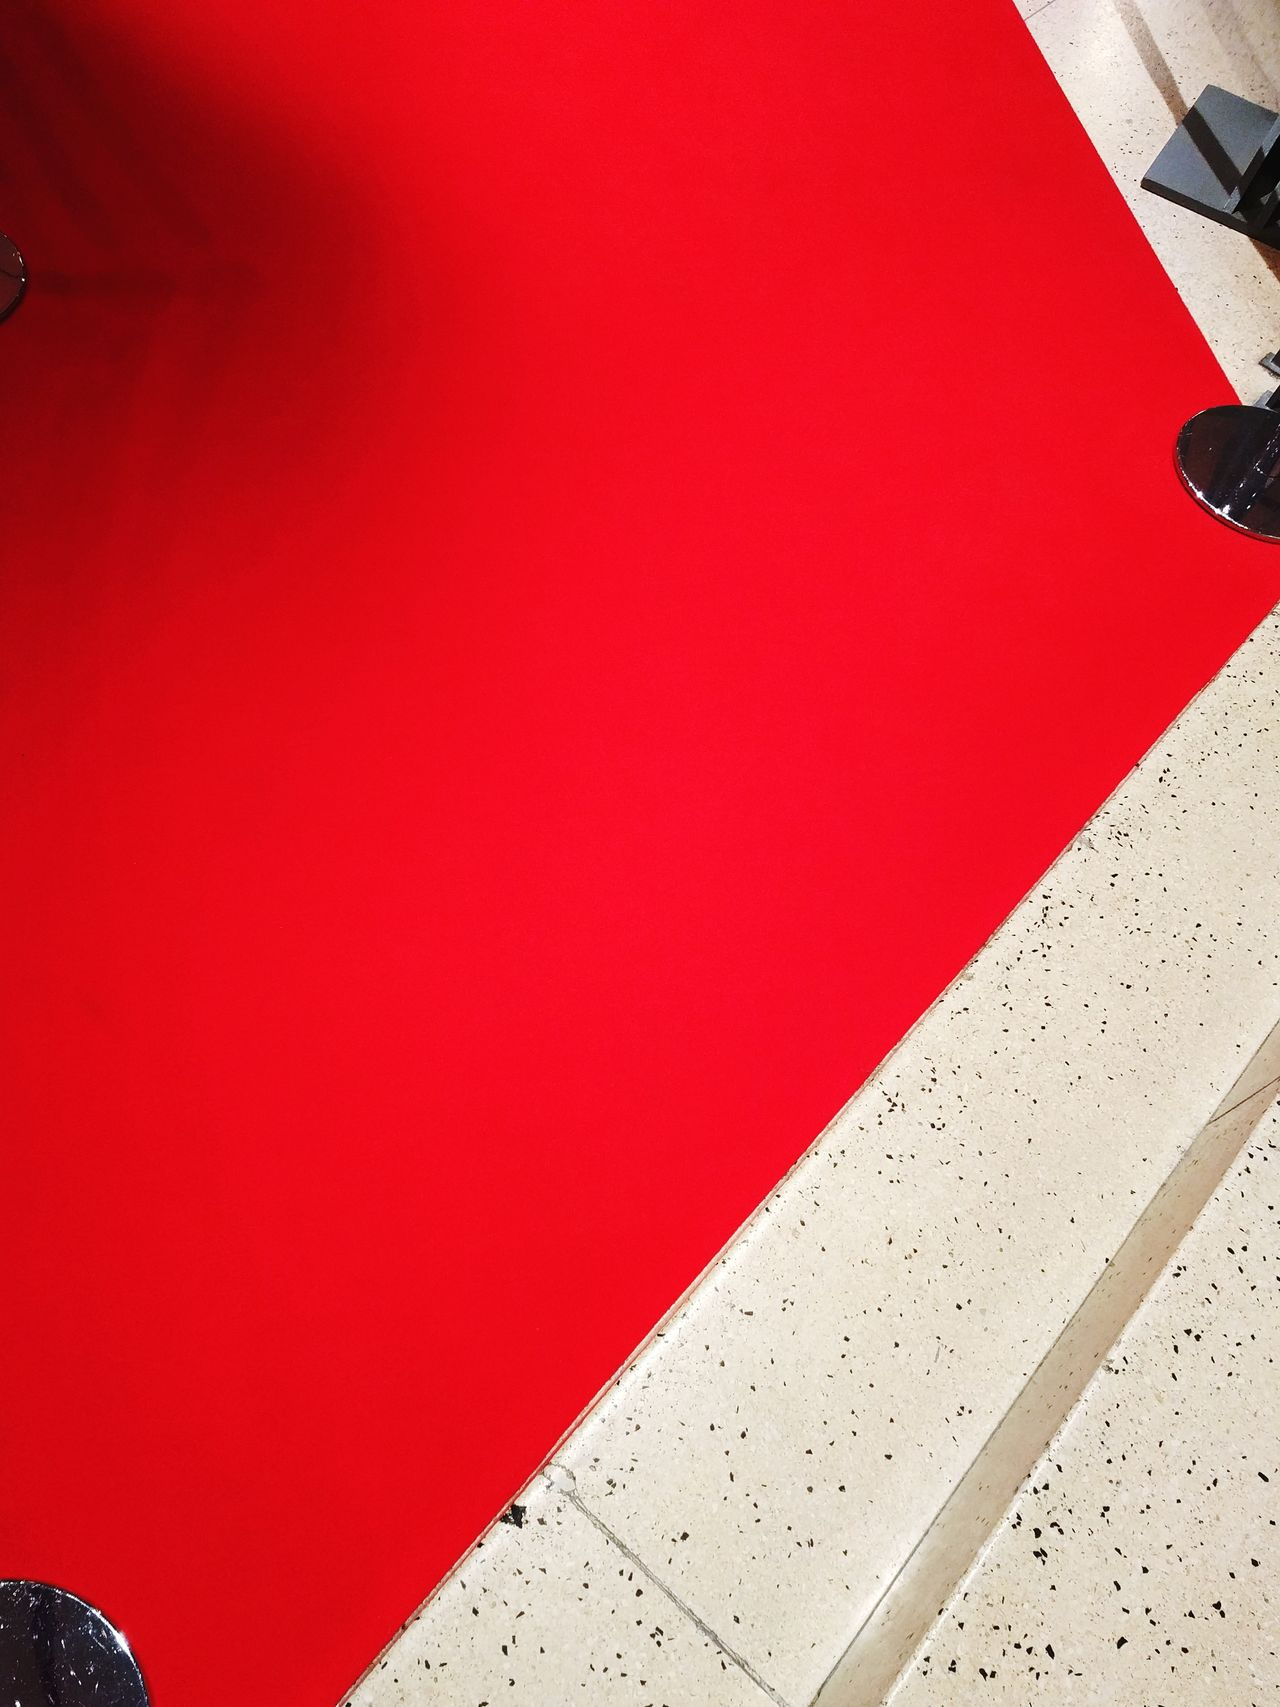 Red Wall - Building Feature No People Built Structure Architecture Day Indoors  Close-up Abstract Red Carpet Backgrounds Architecture Full Frame Red